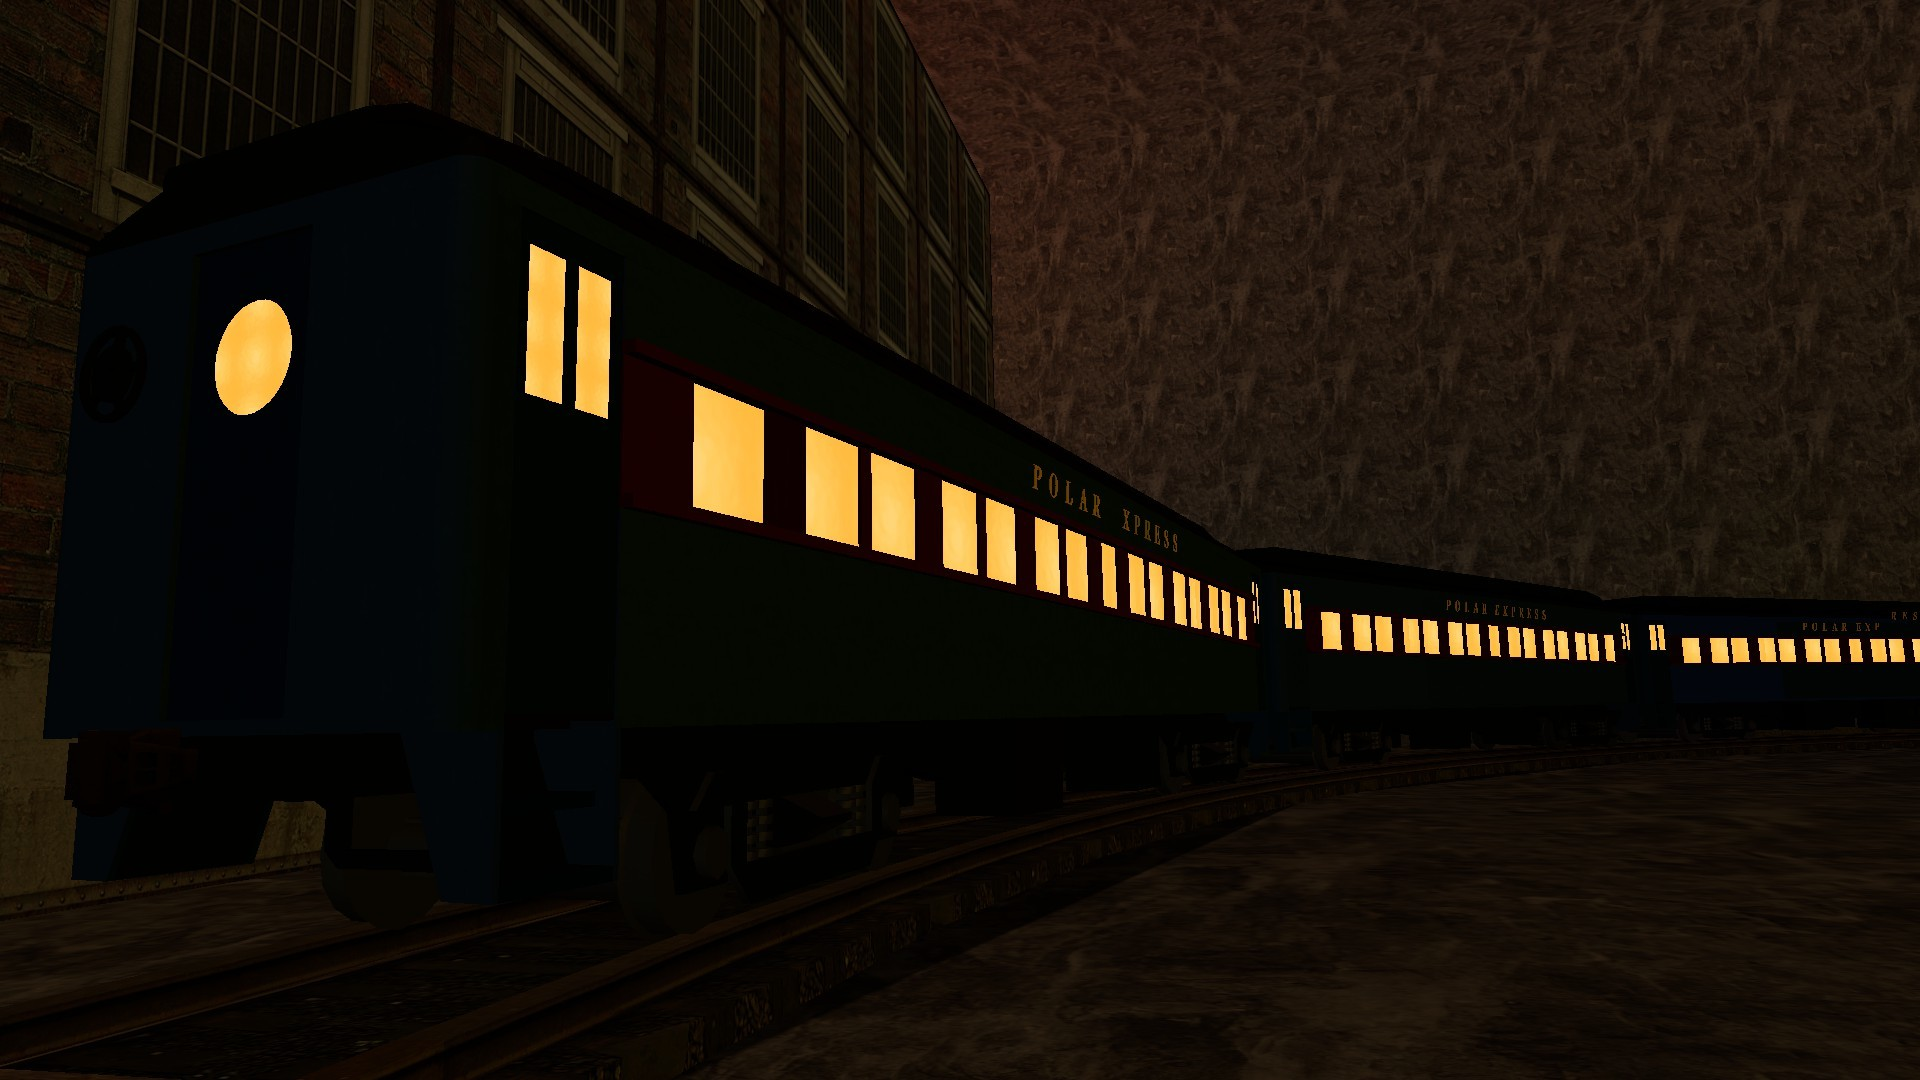 1920x1080 Polar Express coaches by Extremer9000 Polar Express coaches by Extremer9000